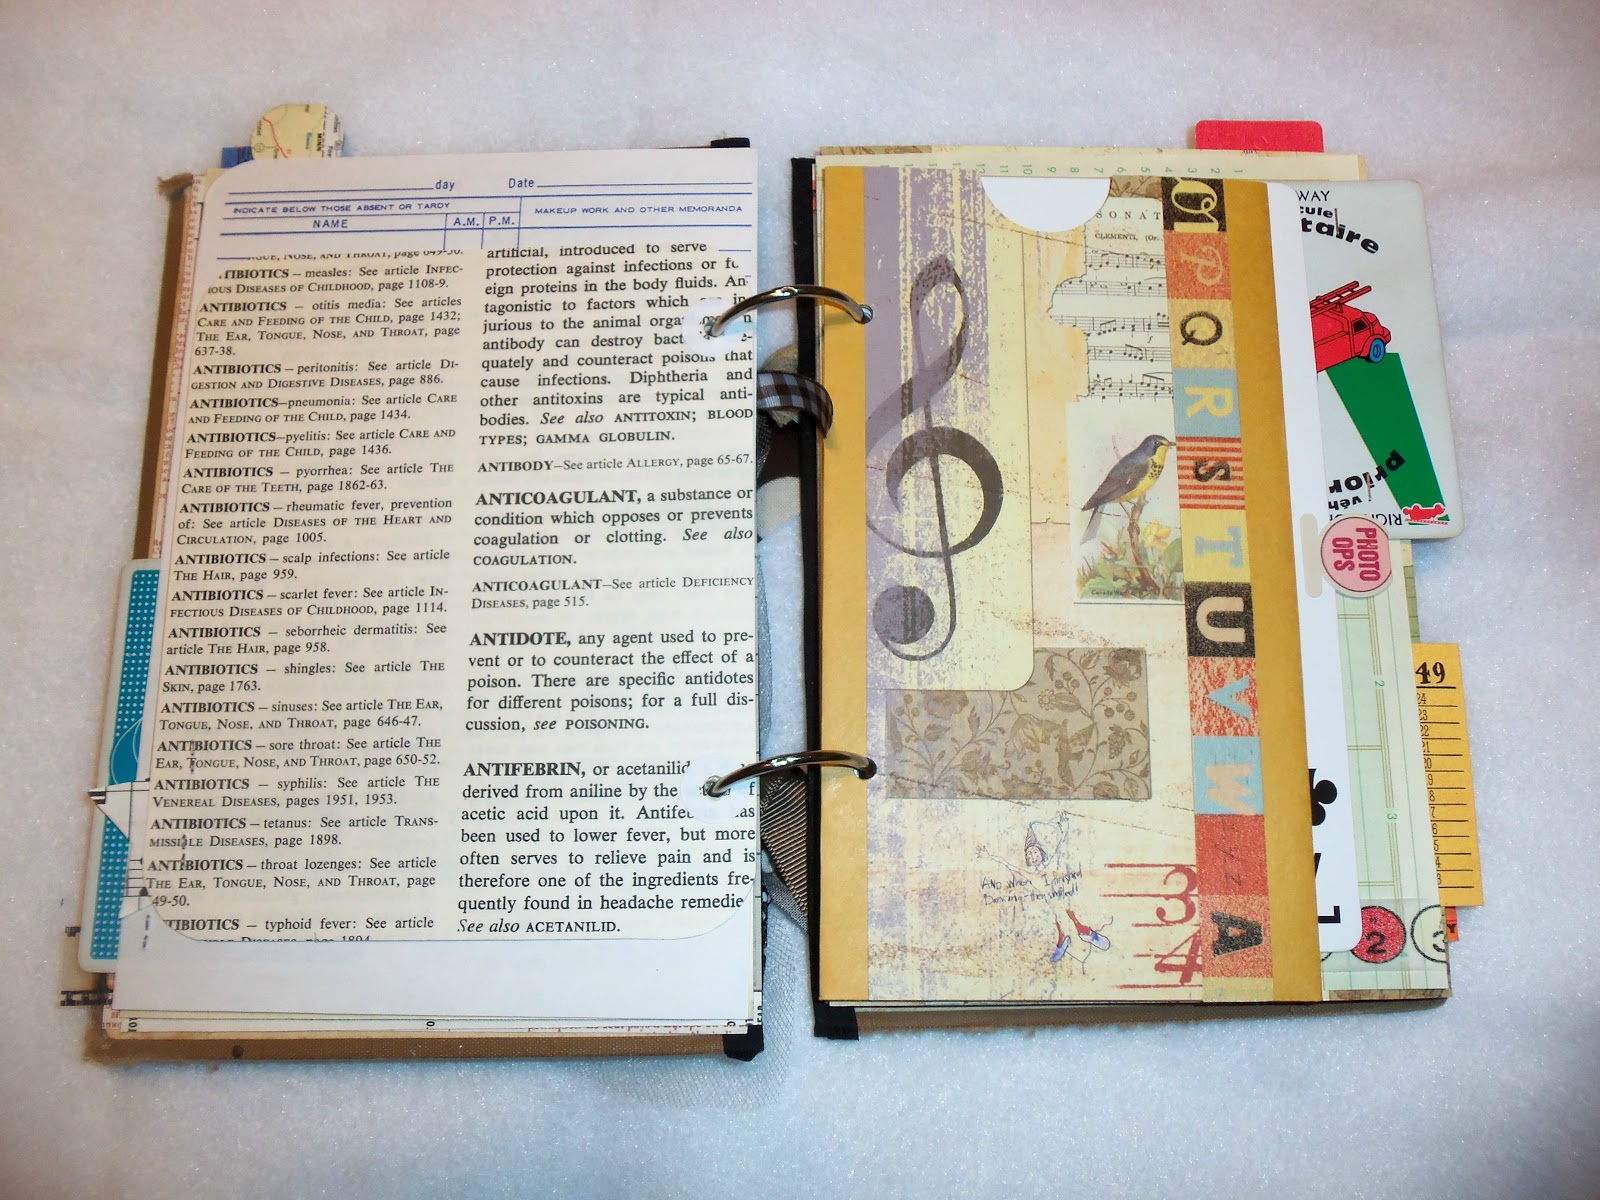 Best friend scrapbook ideas - Vintage Scrapbook Cover Ideas Pages In Her Album Every